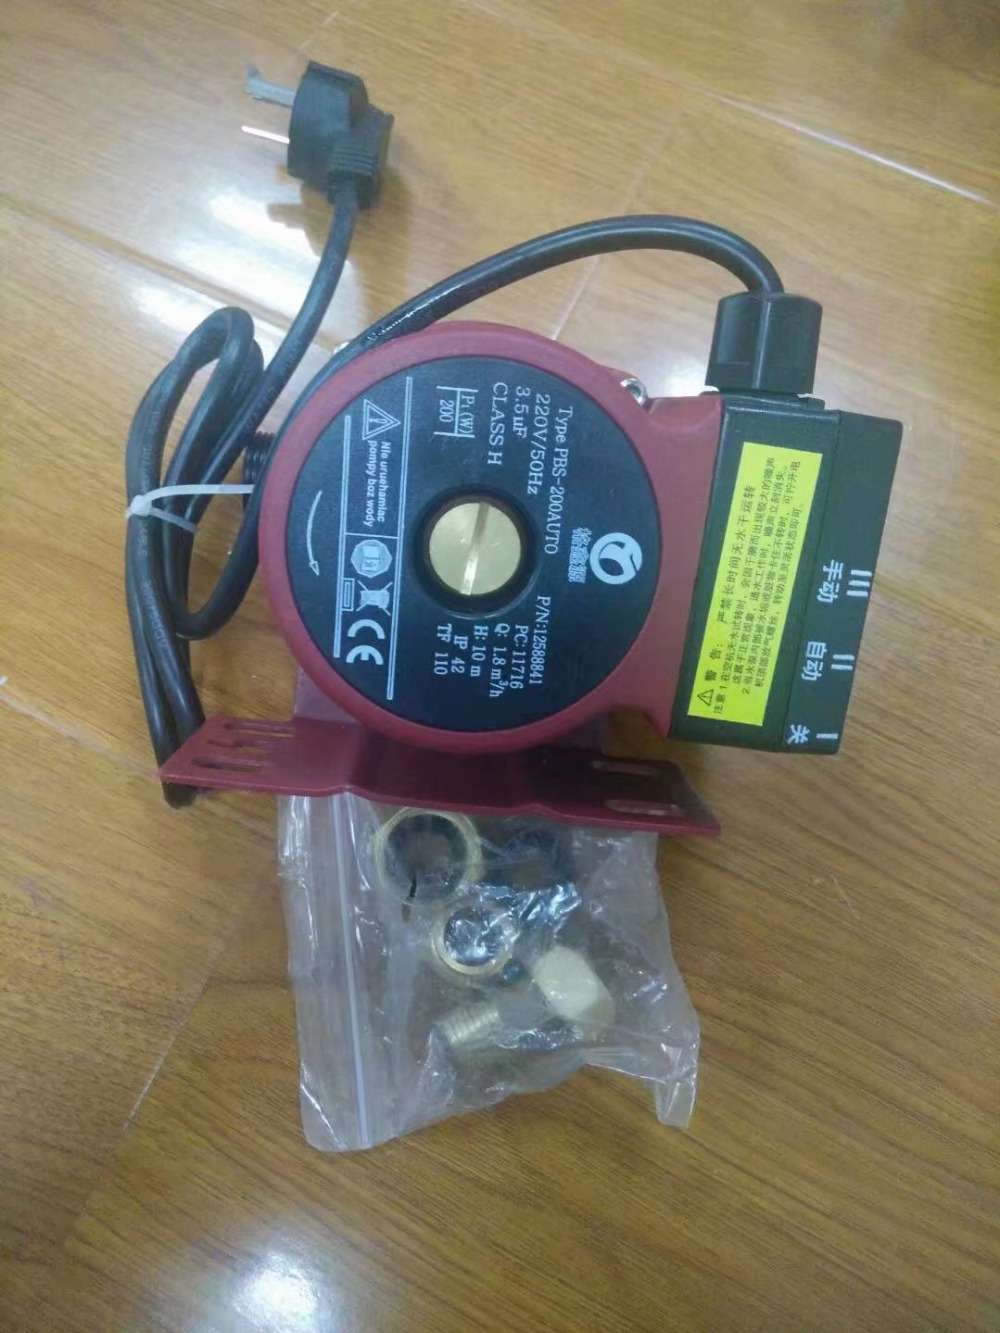 reorder rate up to 80% booster pump for hot water made in china household water pressure booster pump direction booster pump reorder rate up to 80% booster pump for fire fighting